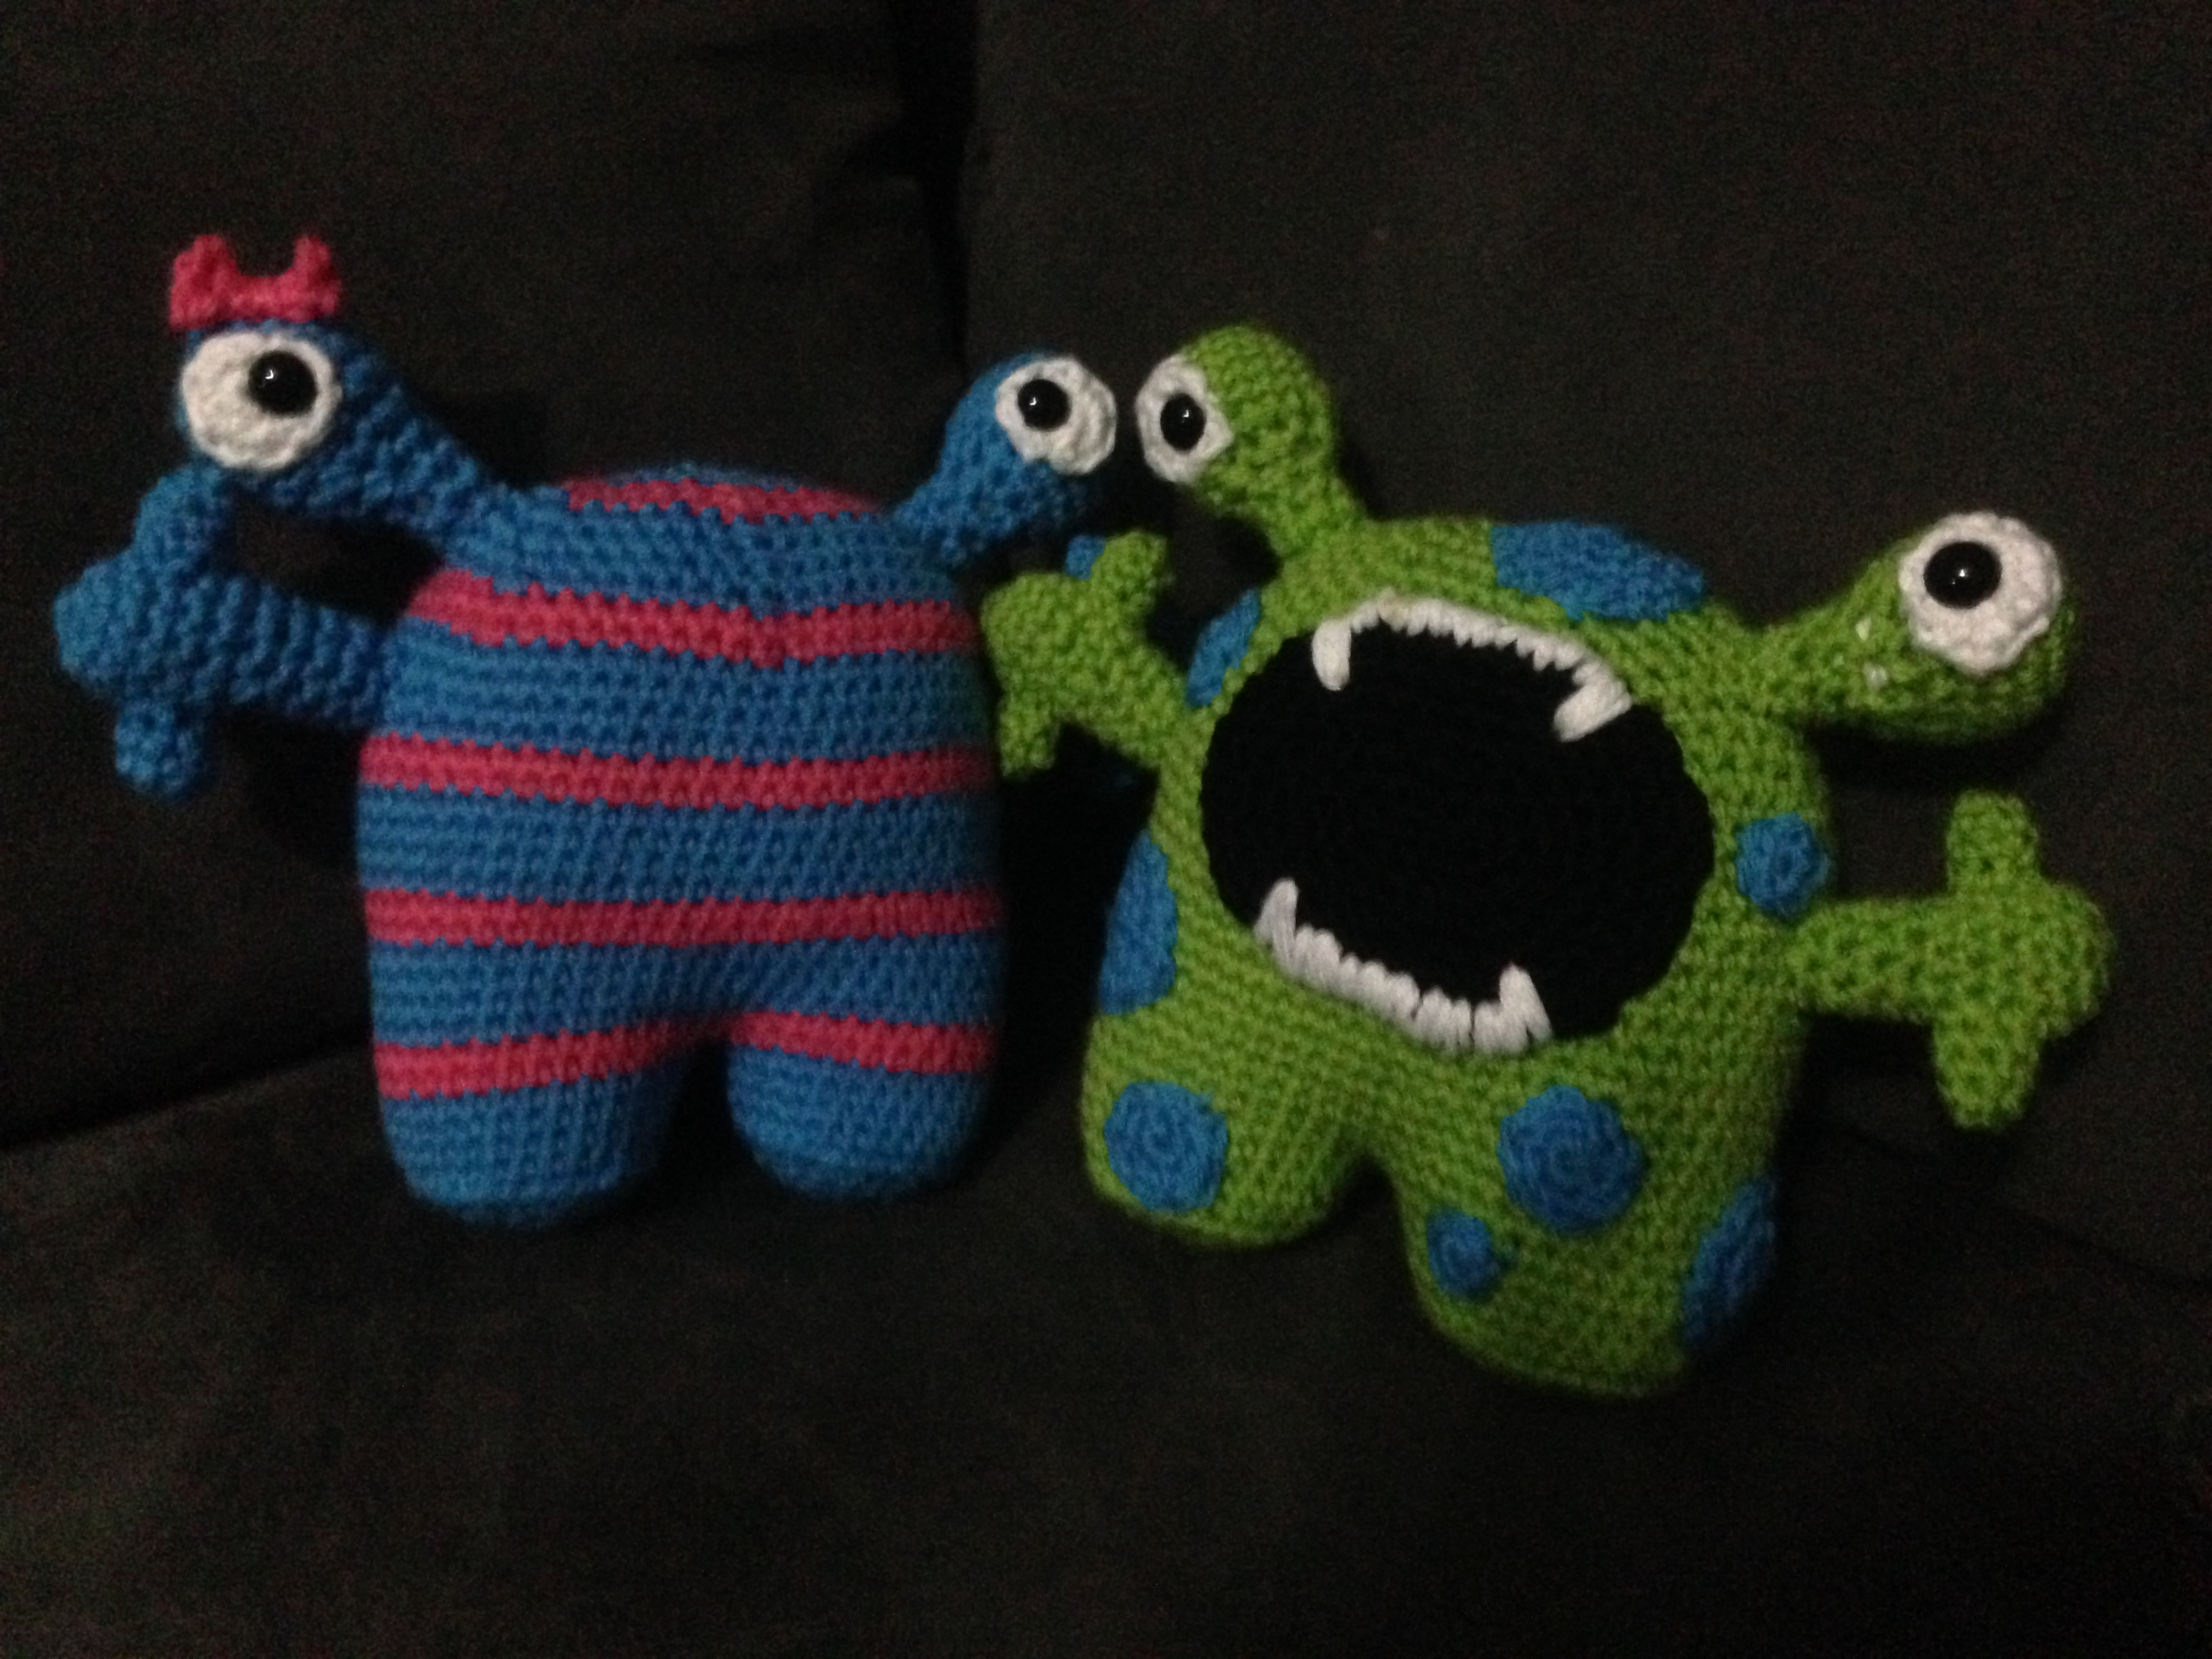 Bonnie and Clyde – new monster pattern